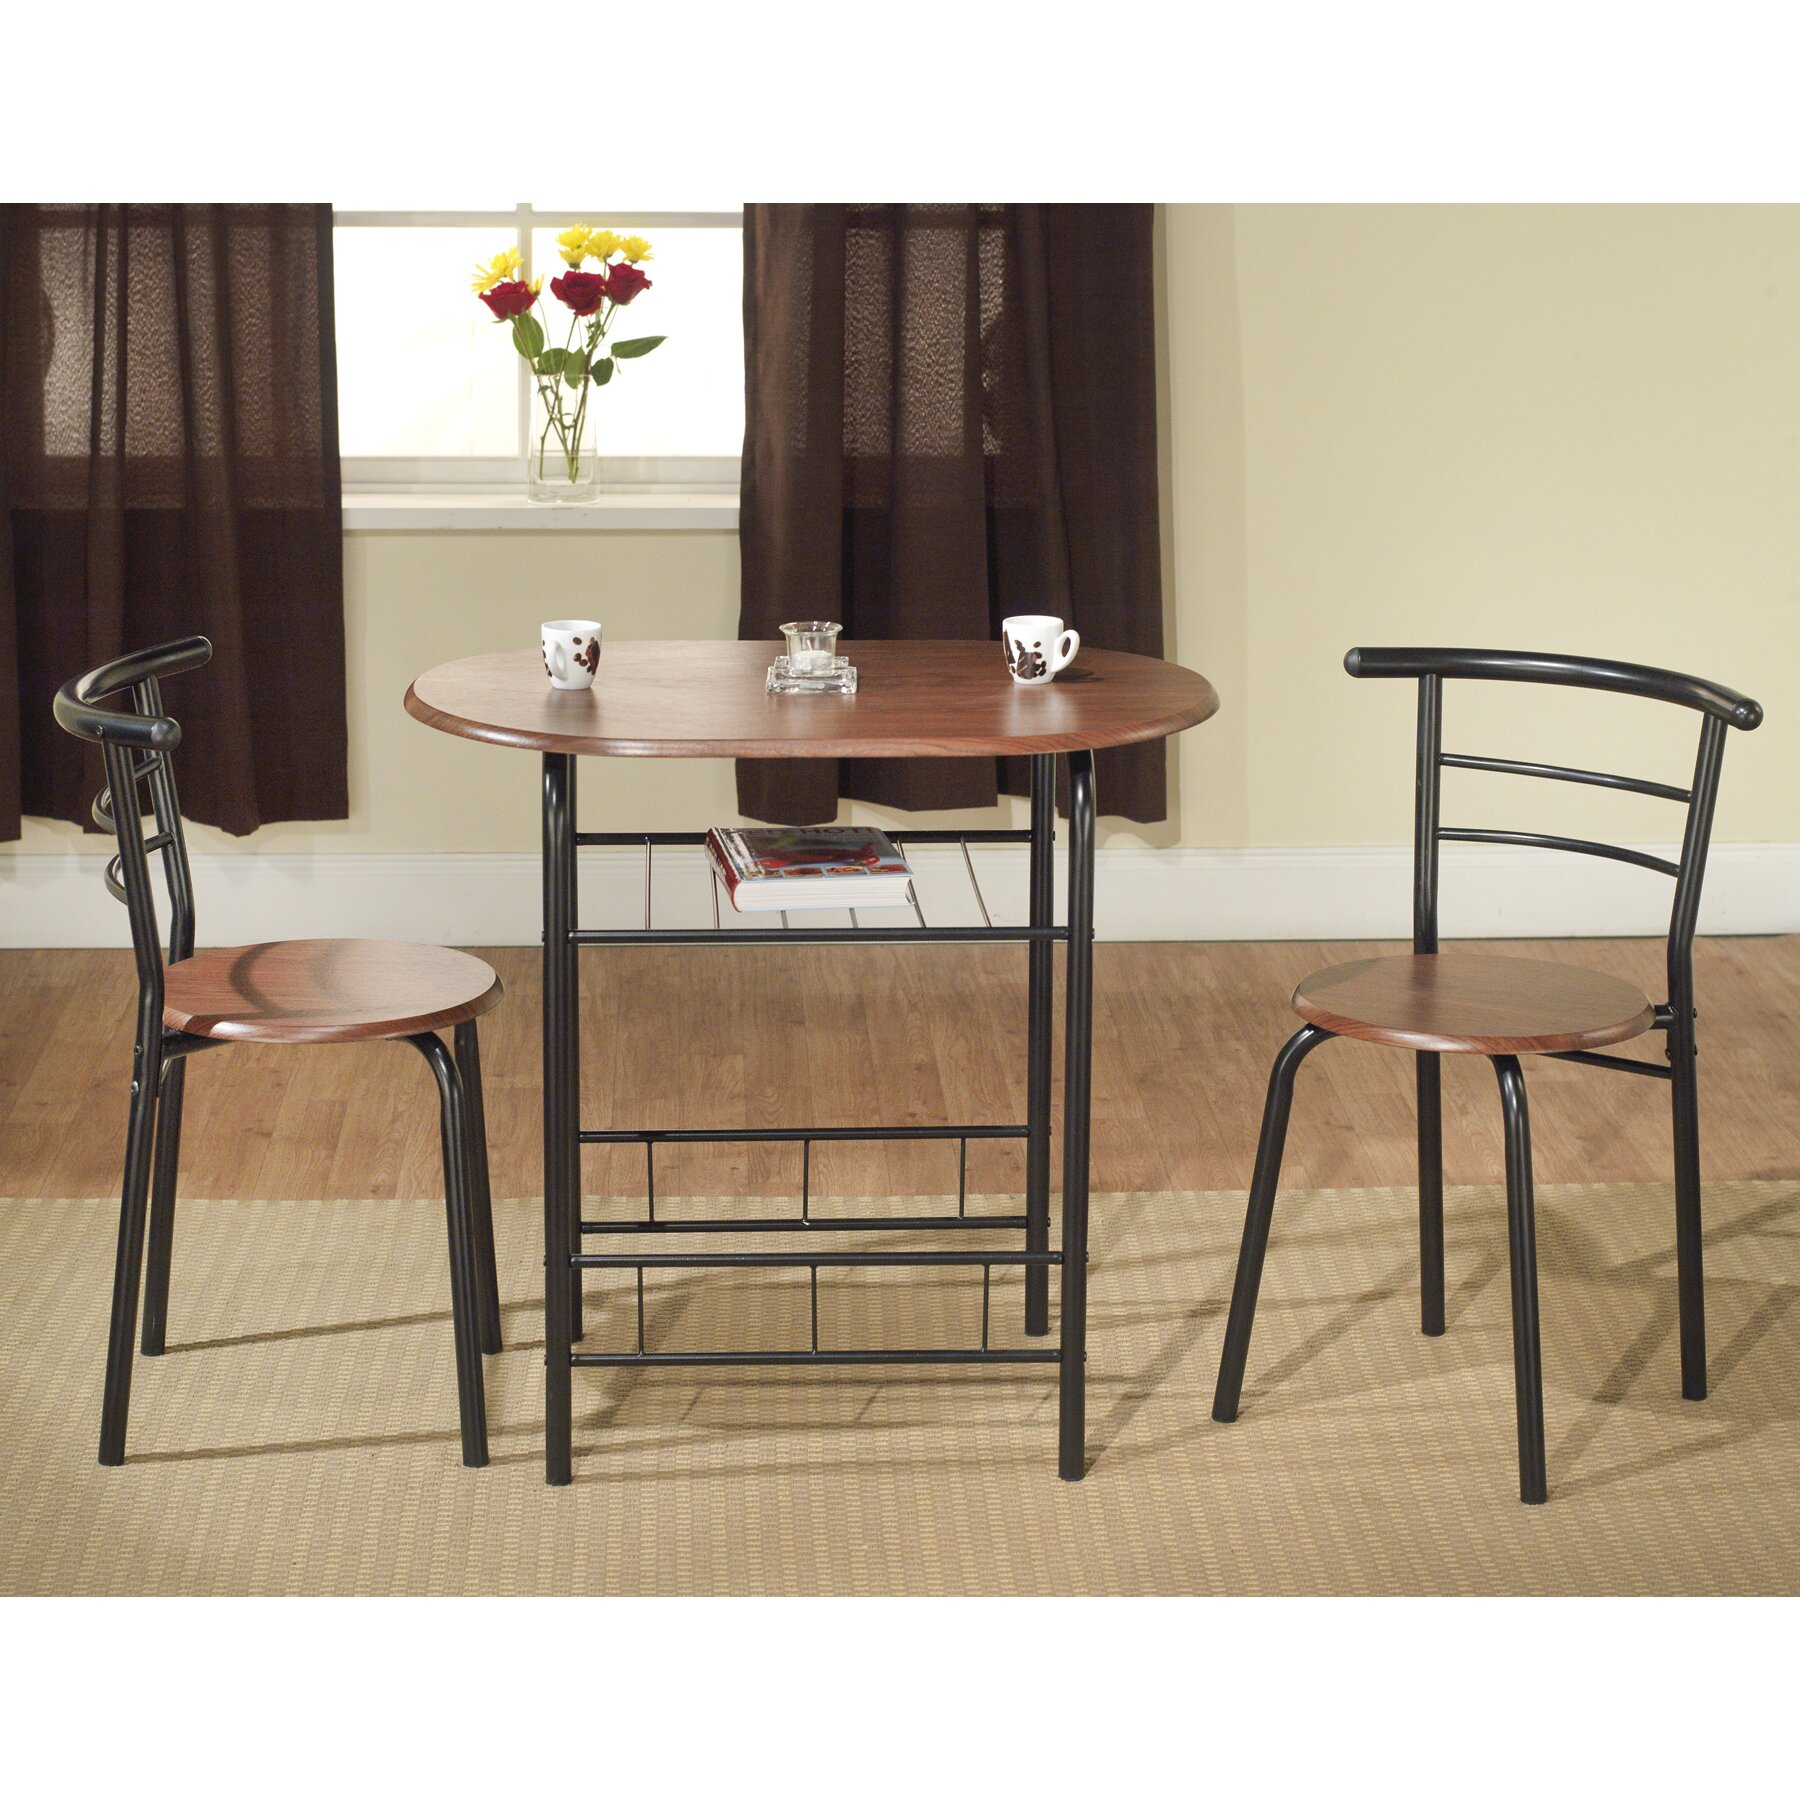 Dining Table In Kitchen Tms Bistro 3 Piece Compact Dining Set Reviews Wayfair